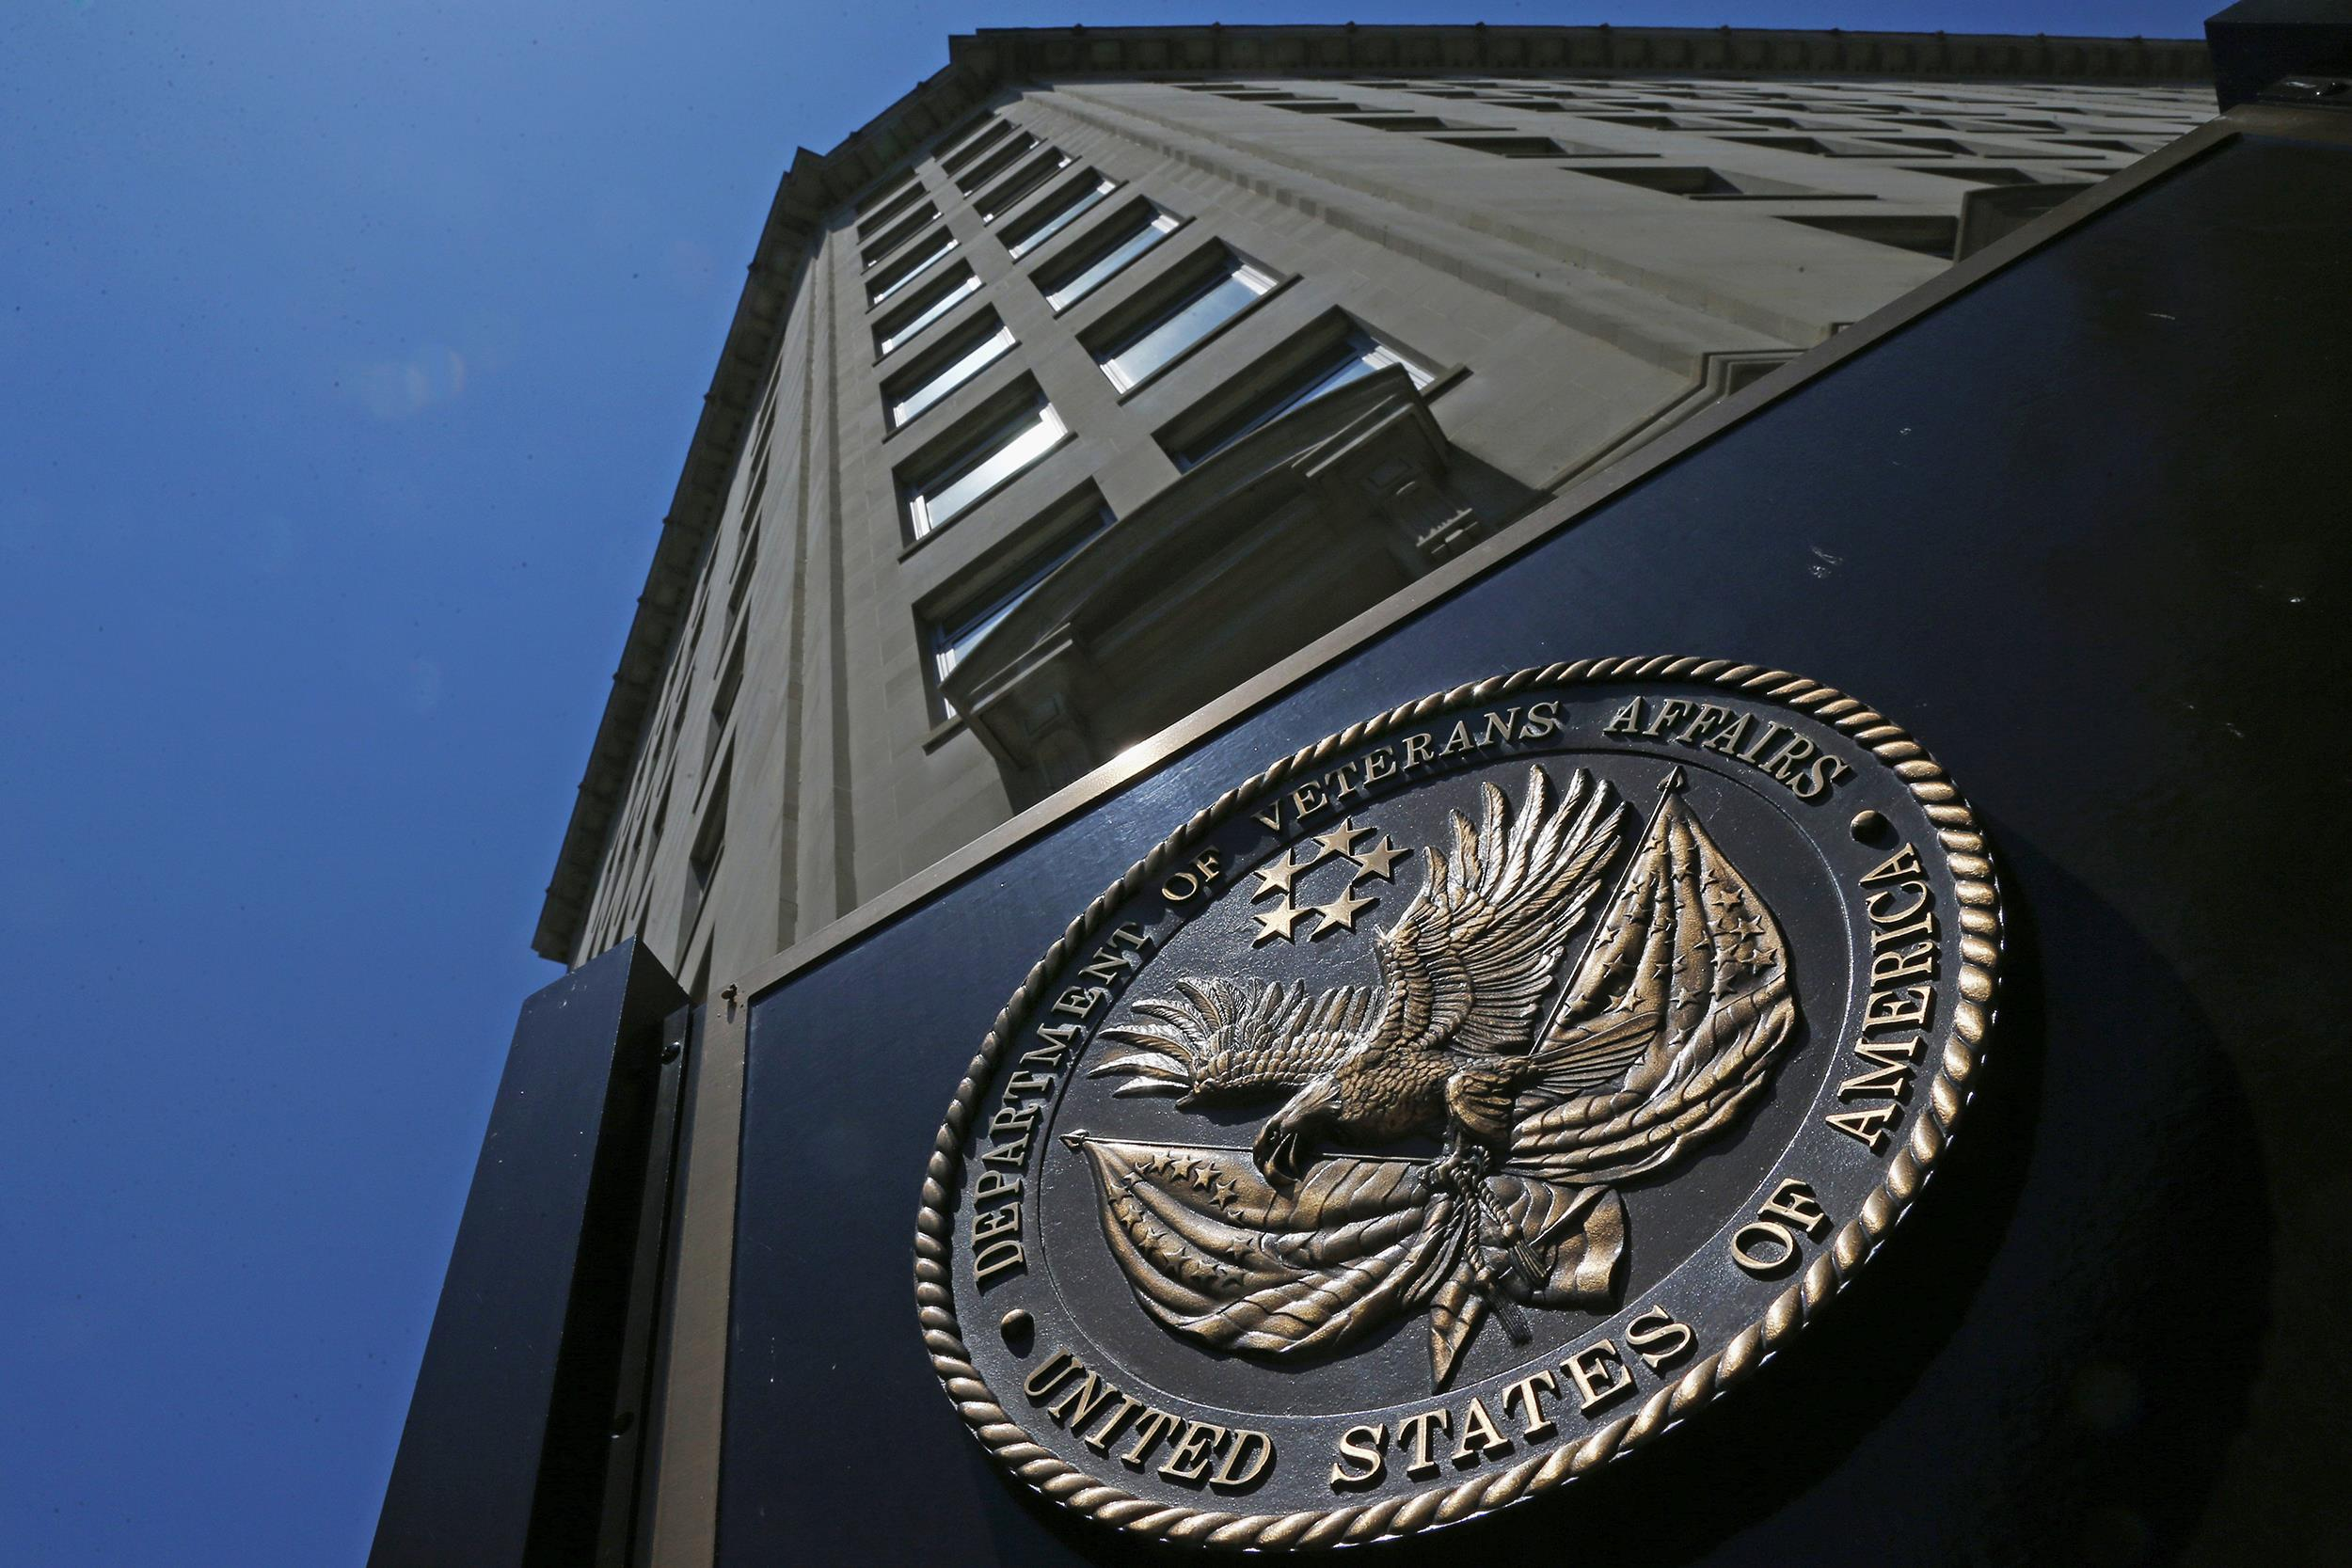 Image: The seal a fixed to the front of the Department of Veterans Affairs building in Washington